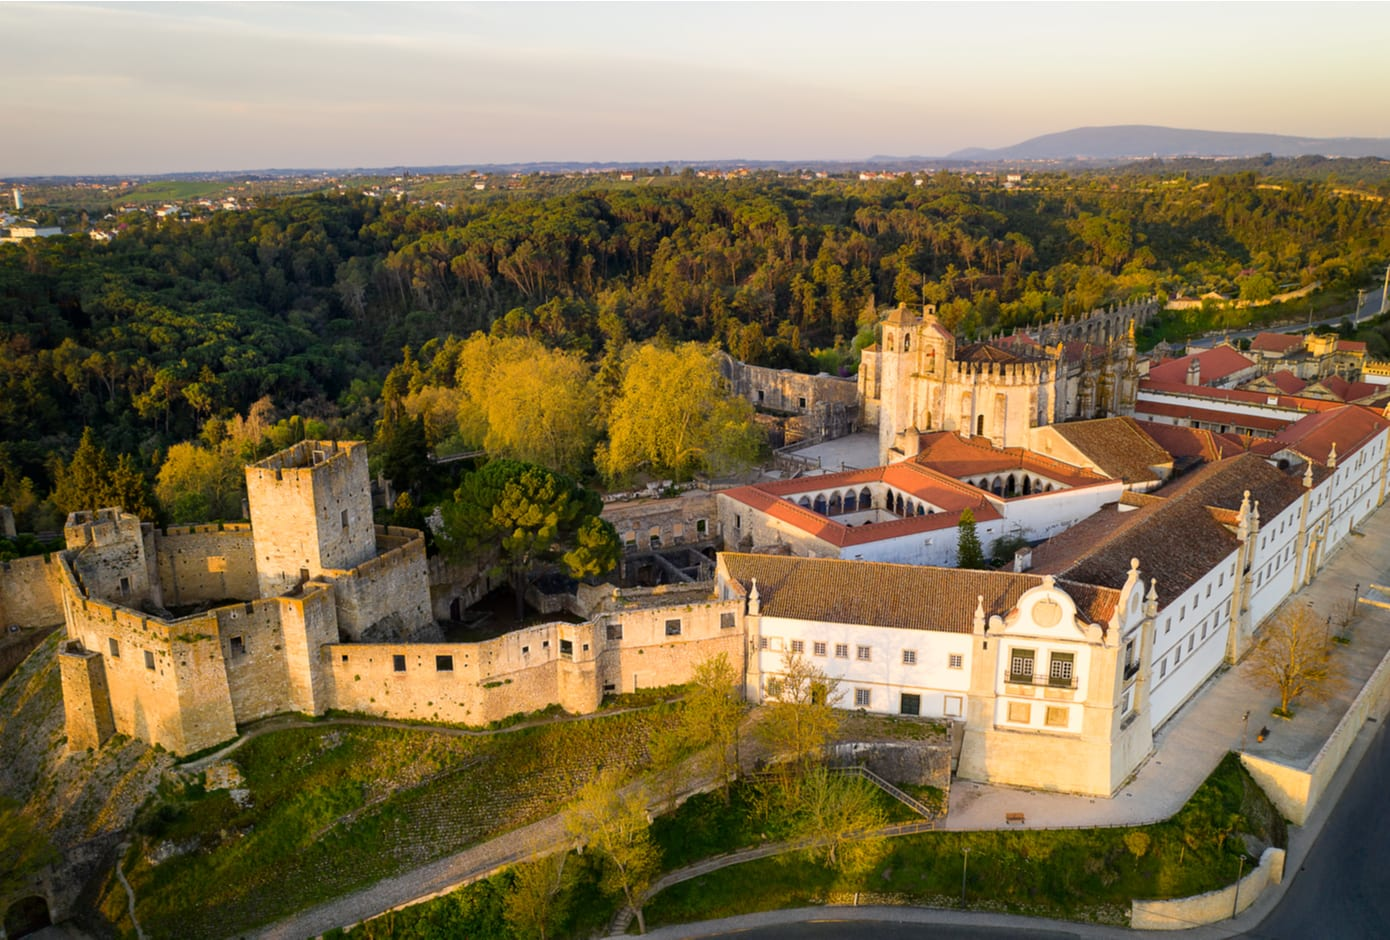 Aerial drone view of Convent of Christ in Tomar at sunrise, Portugal